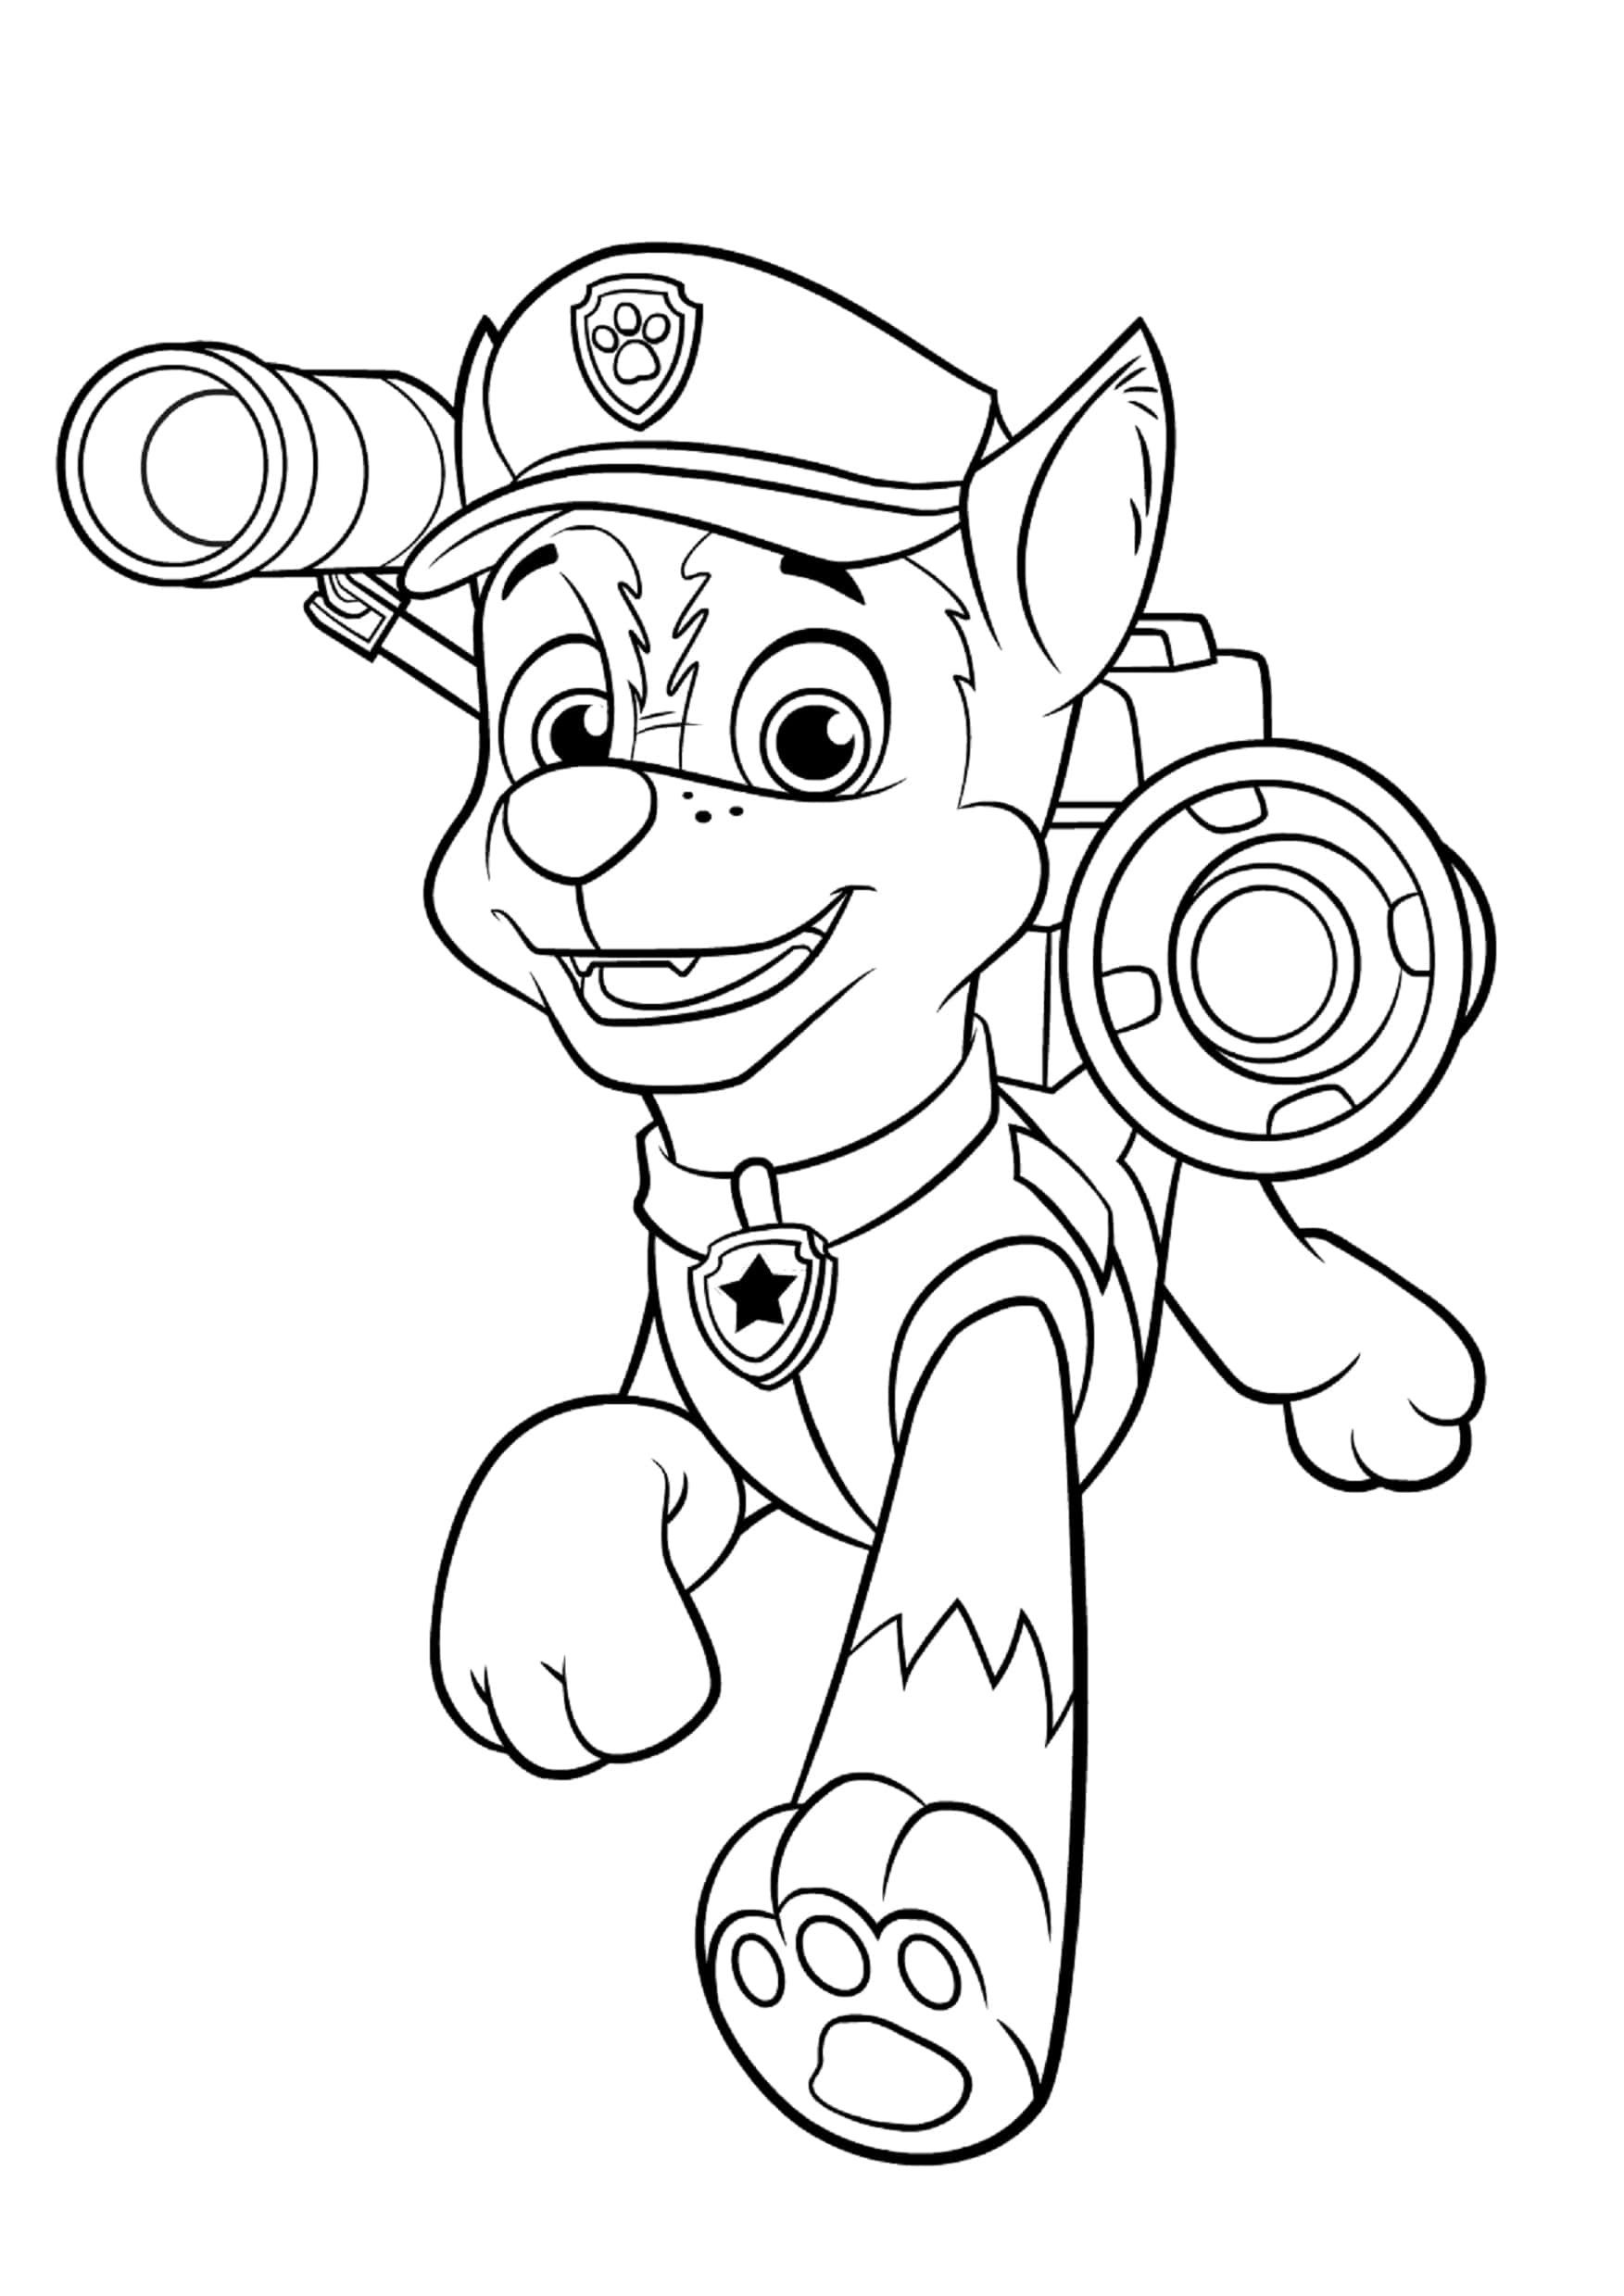 Paw Patrol Coloring Page Free Youngandtae Com Paw Patrol Coloring Pages Paw Patrol Coloring Easter Coloring Pages